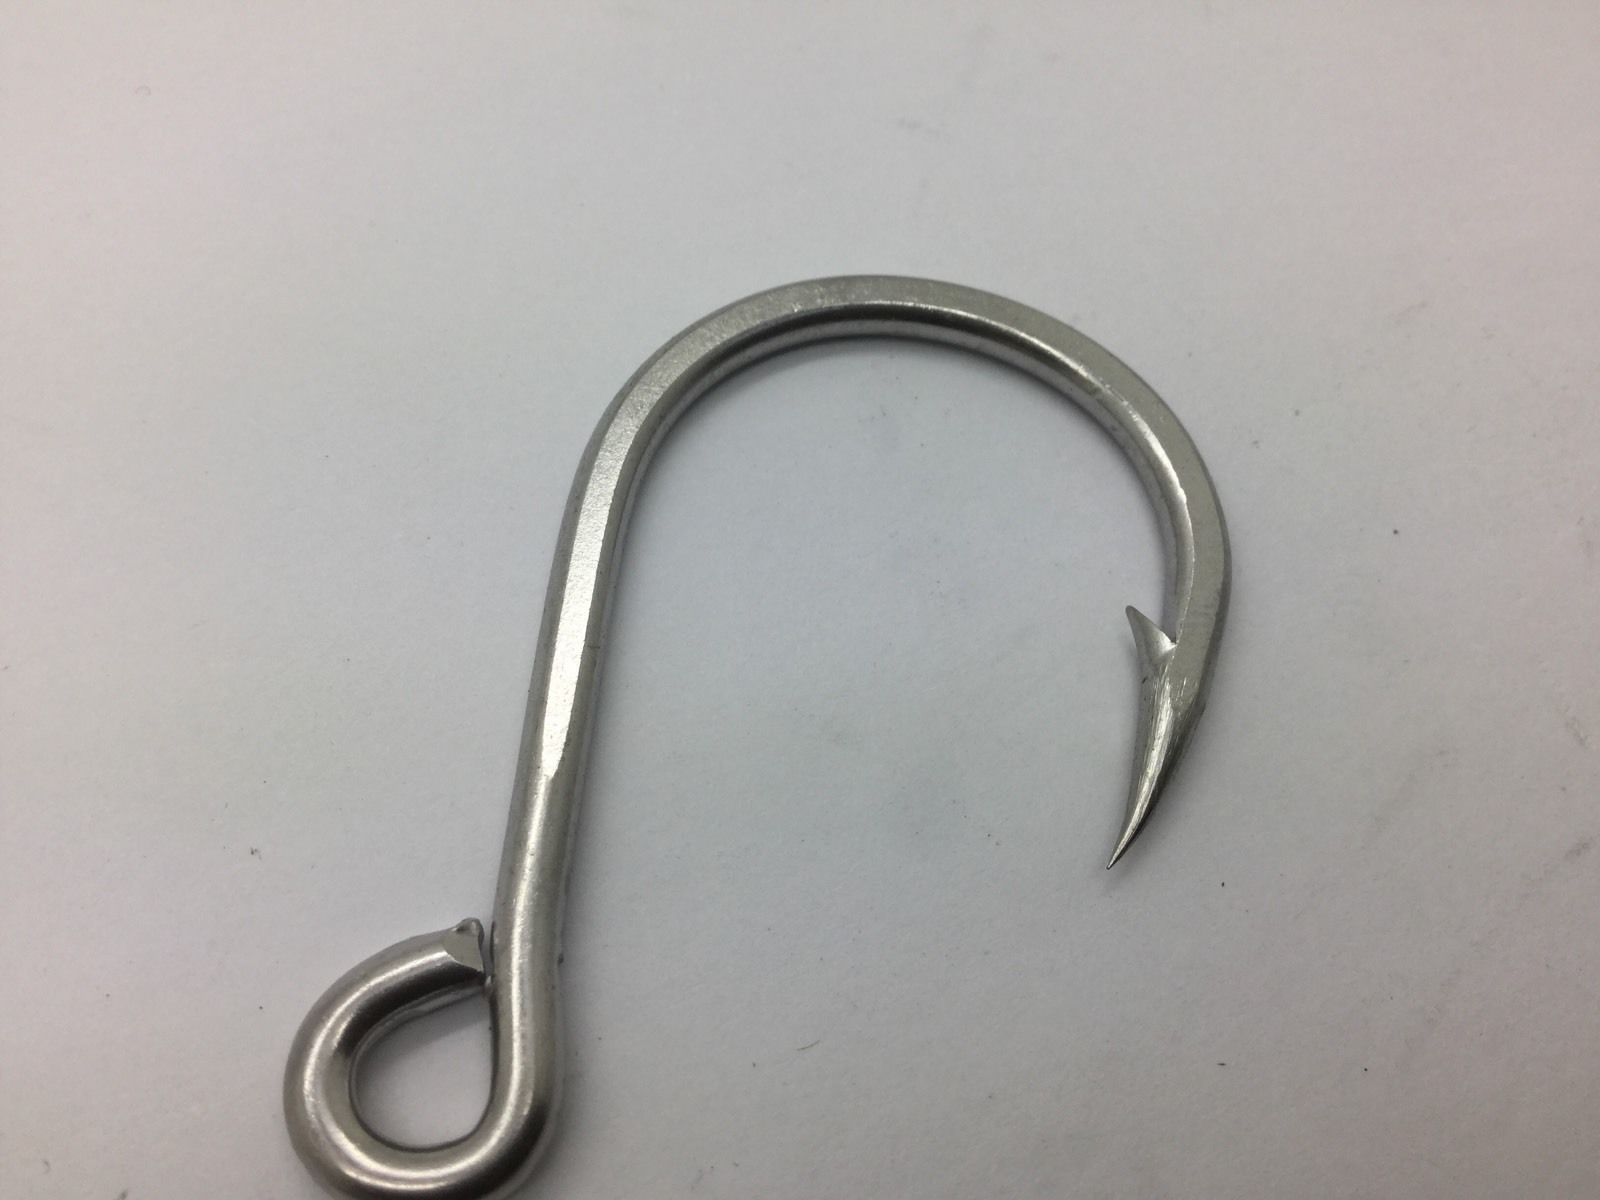 Hooks harbor Straight Eye 5/0Replacements For Rapala Hardbodys 6 Inch